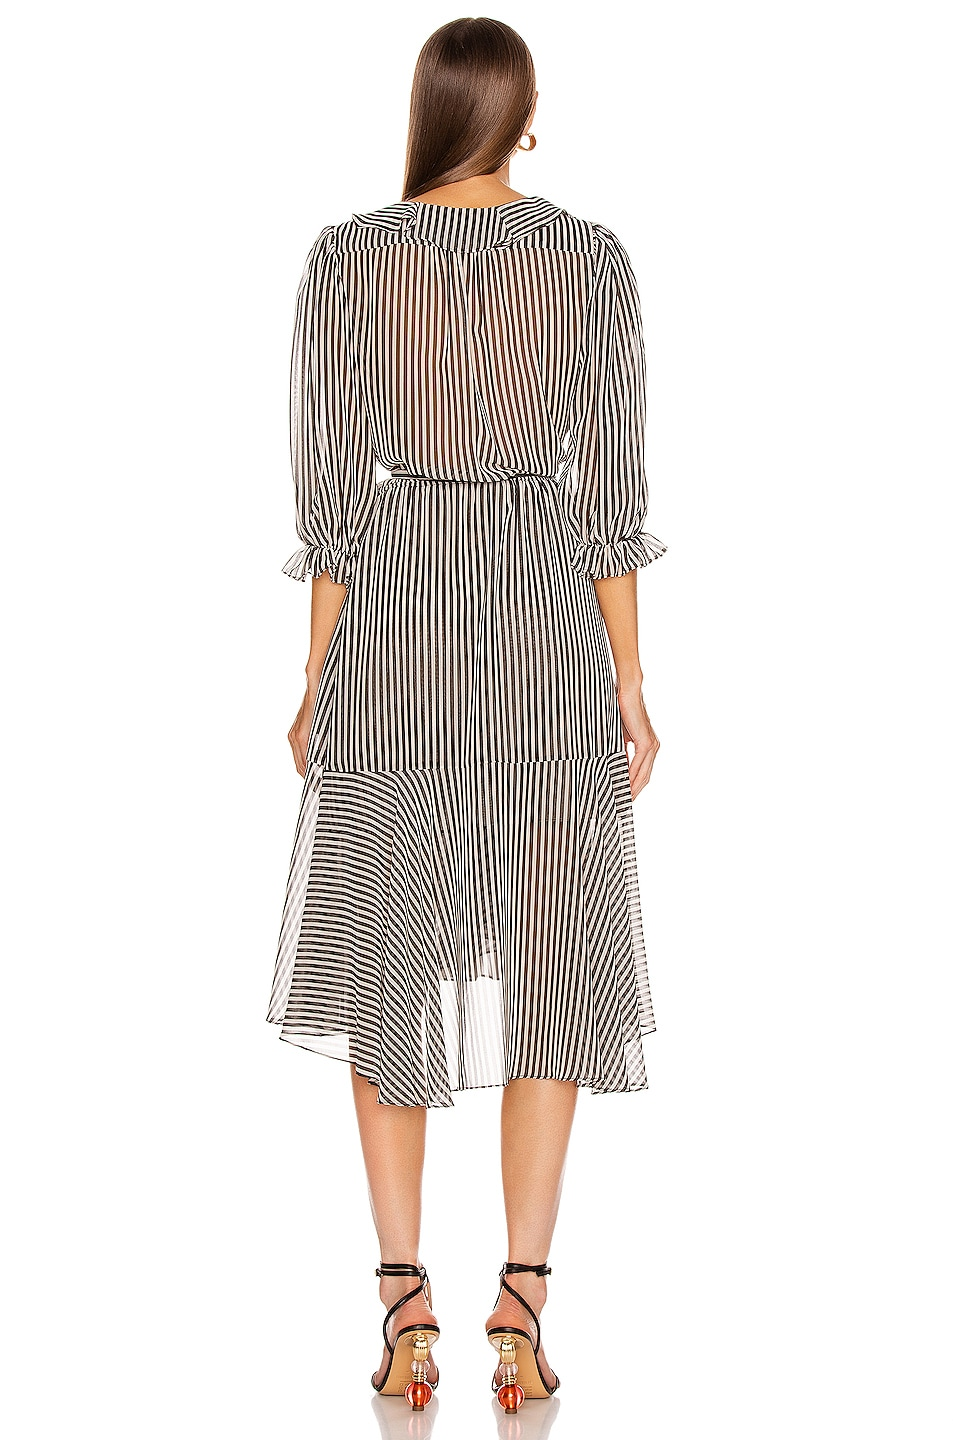 Image 3 of ICONS Objects of Devotion The Cha Cha Dress in Black & White Stripe